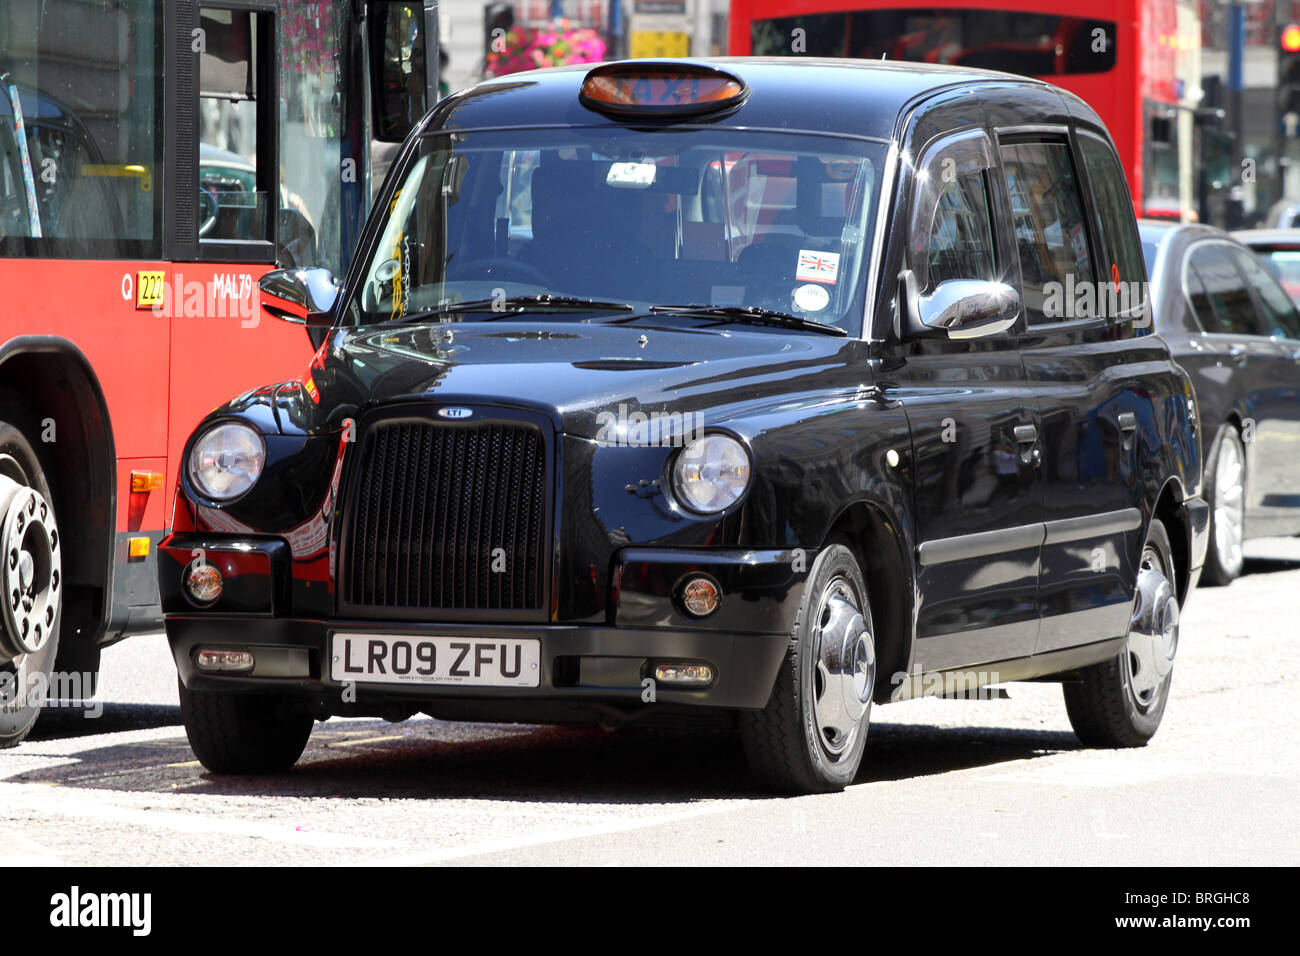 schwarzen london taxi taxi london england stockfoto. Black Bedroom Furniture Sets. Home Design Ideas